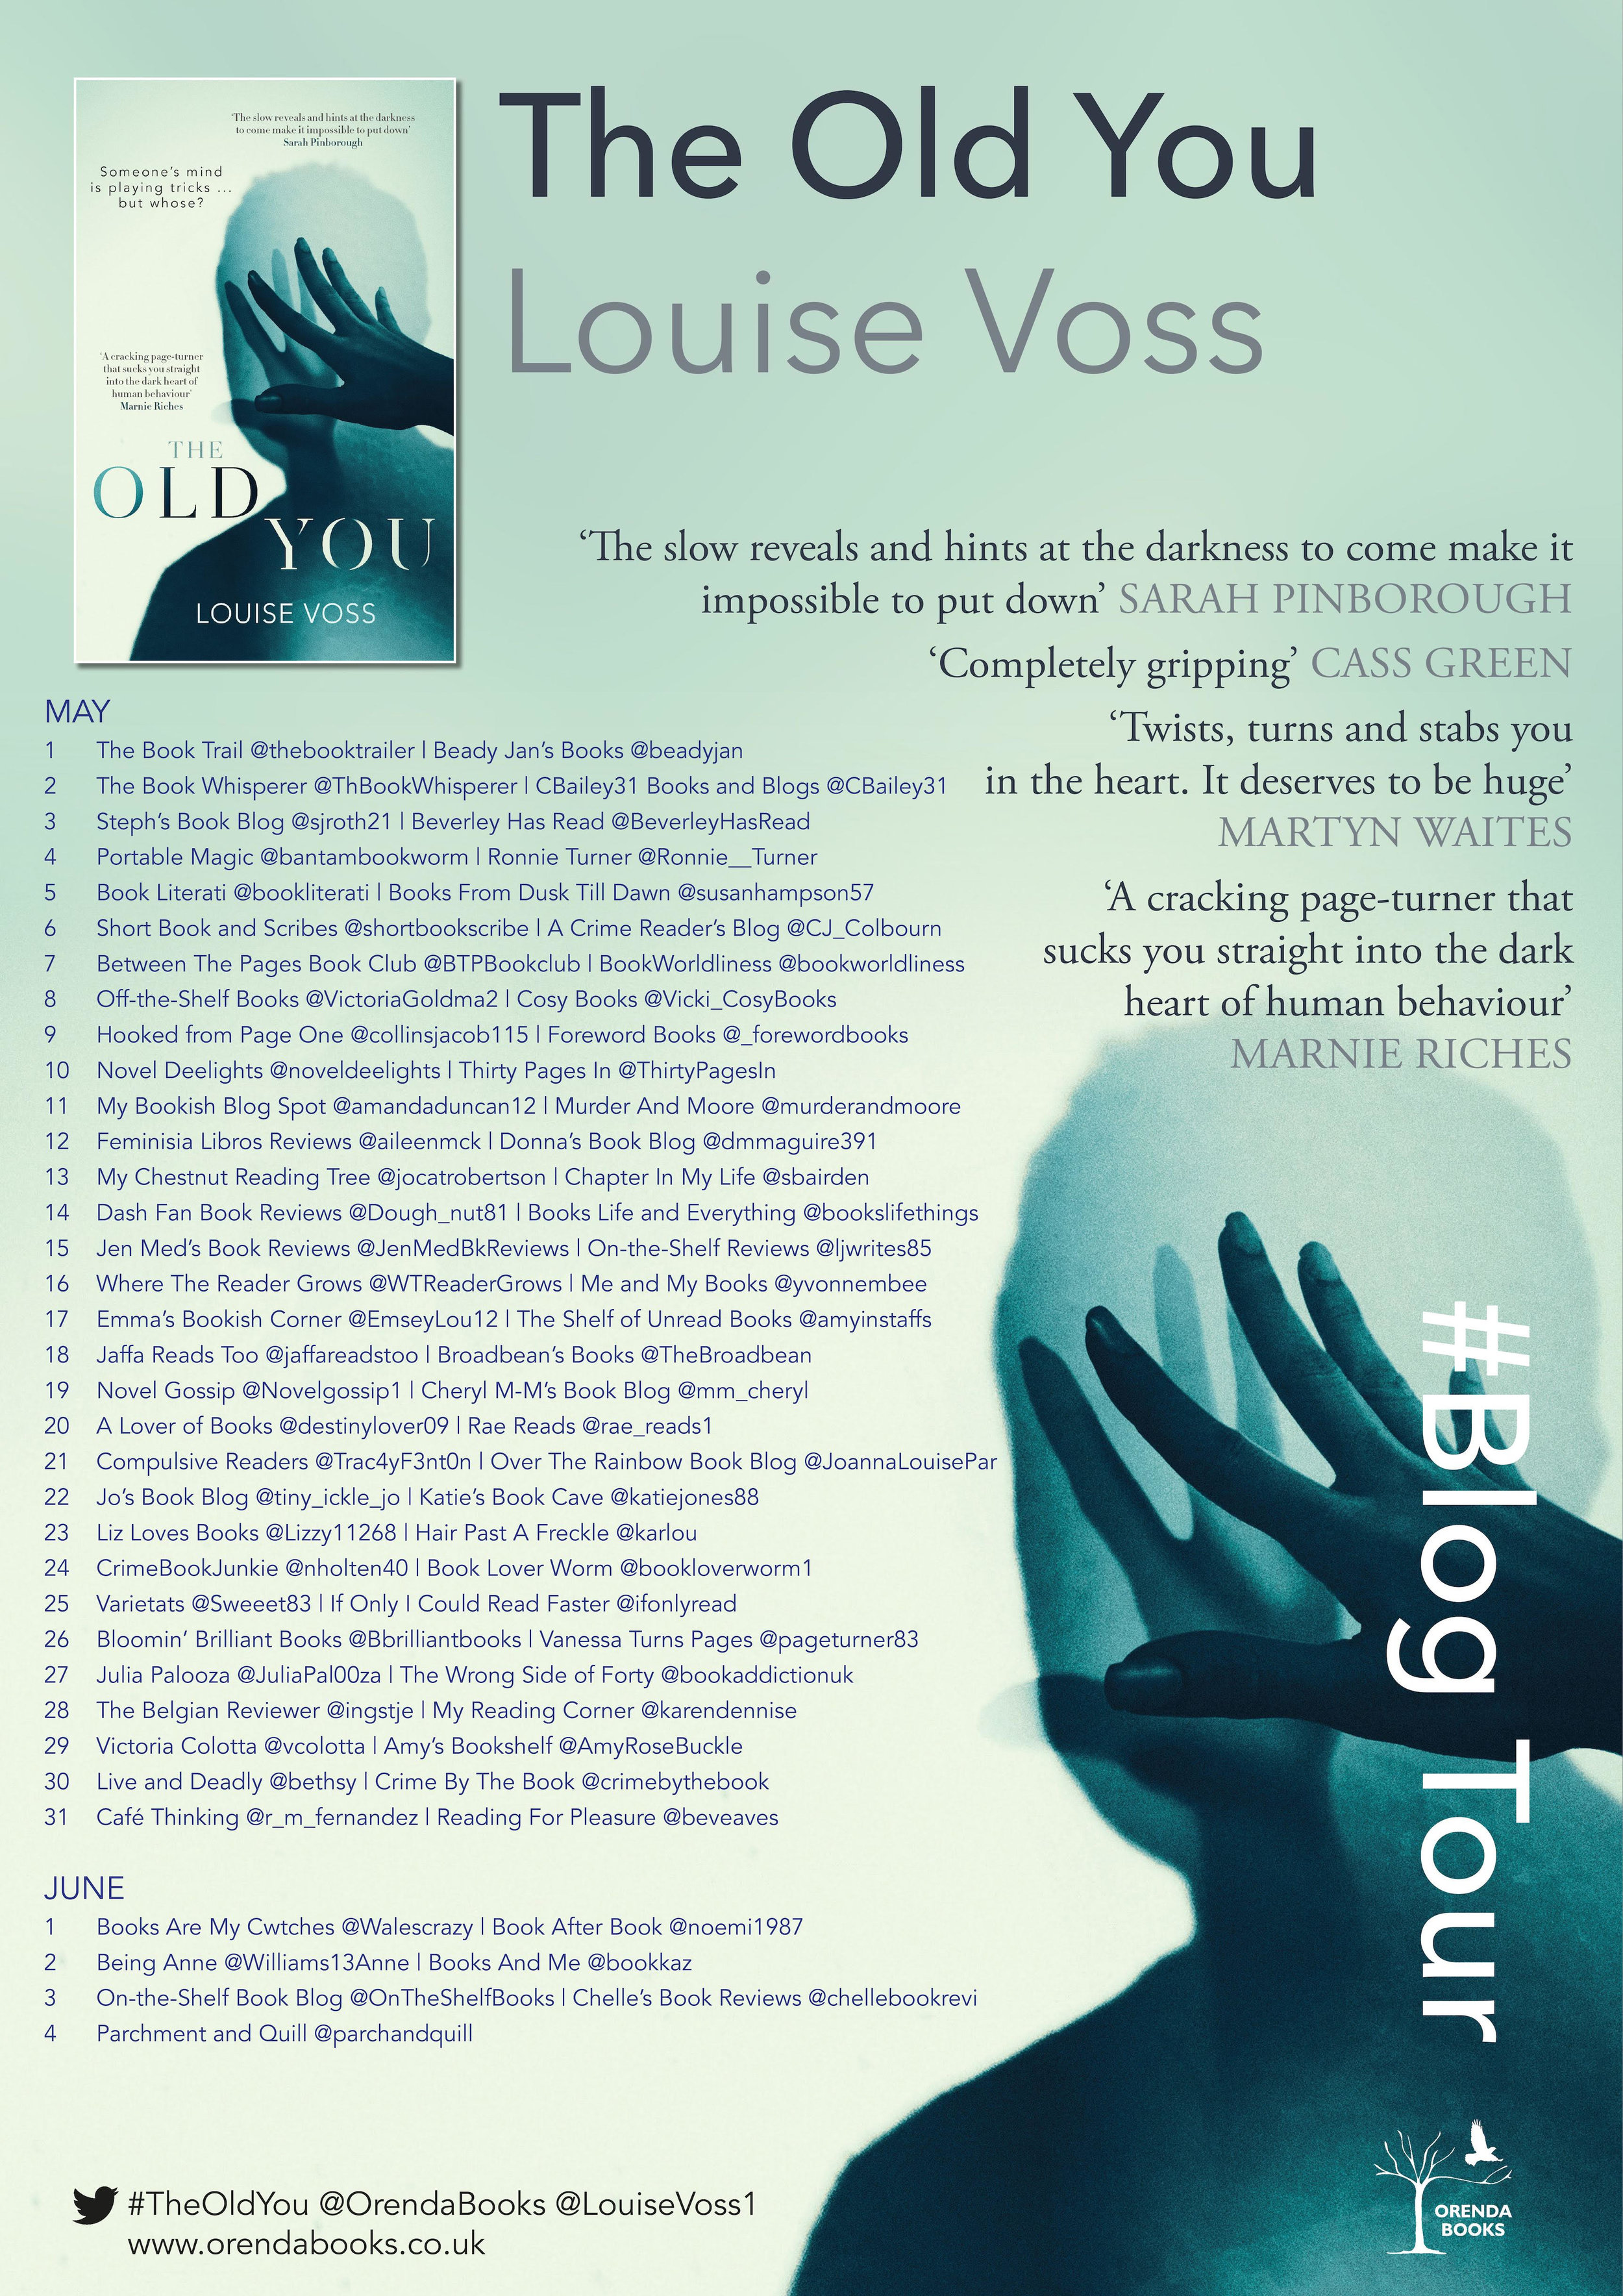 The Old You Blog Tour.jpg